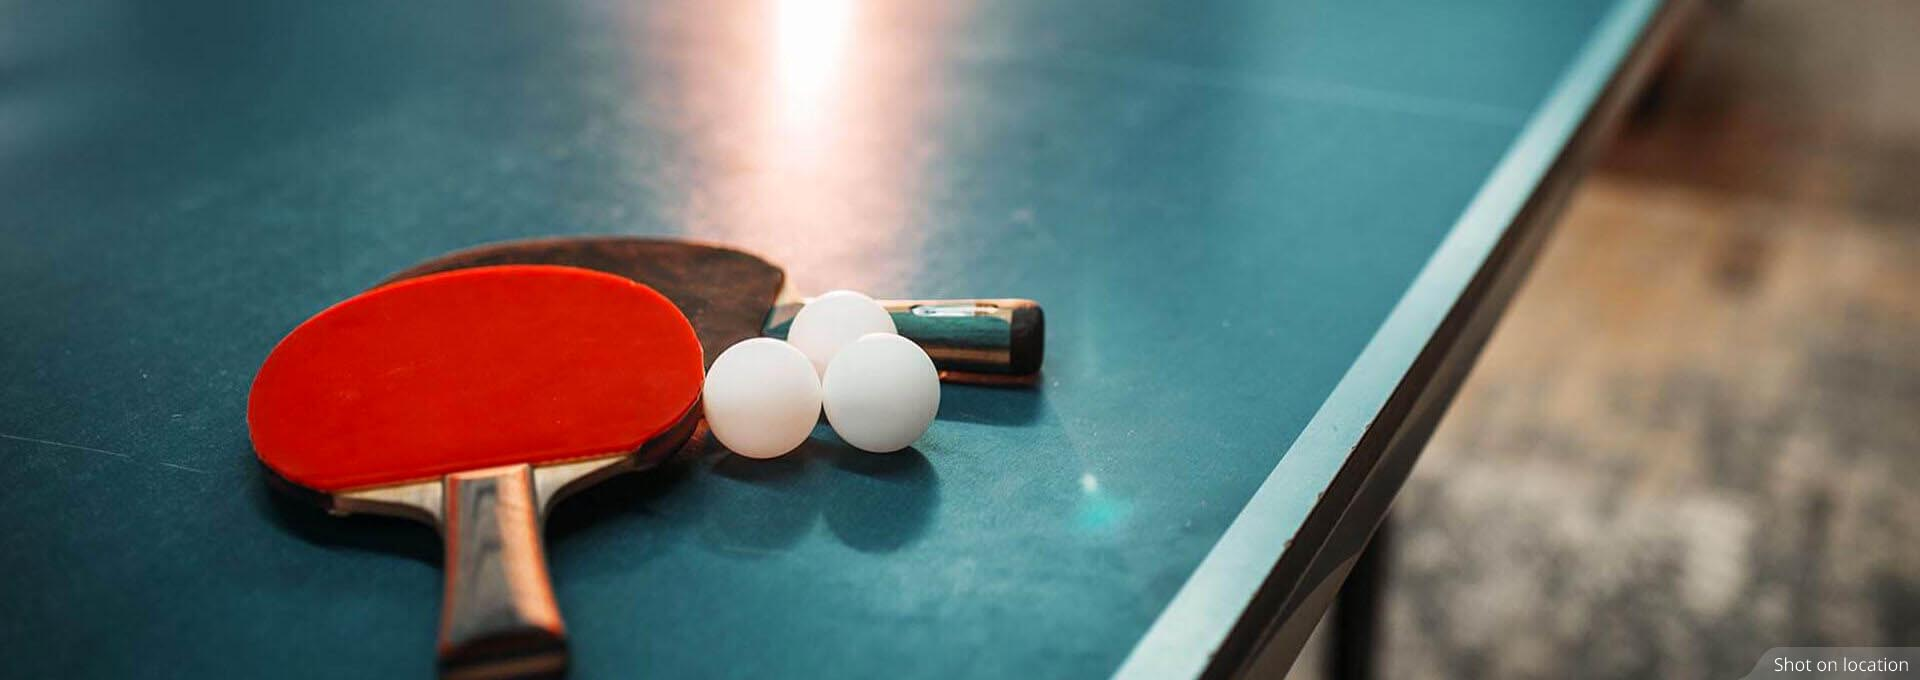 Table tennis court in Calgary by House of Hiranandani in Devanahalli, Bengaluru